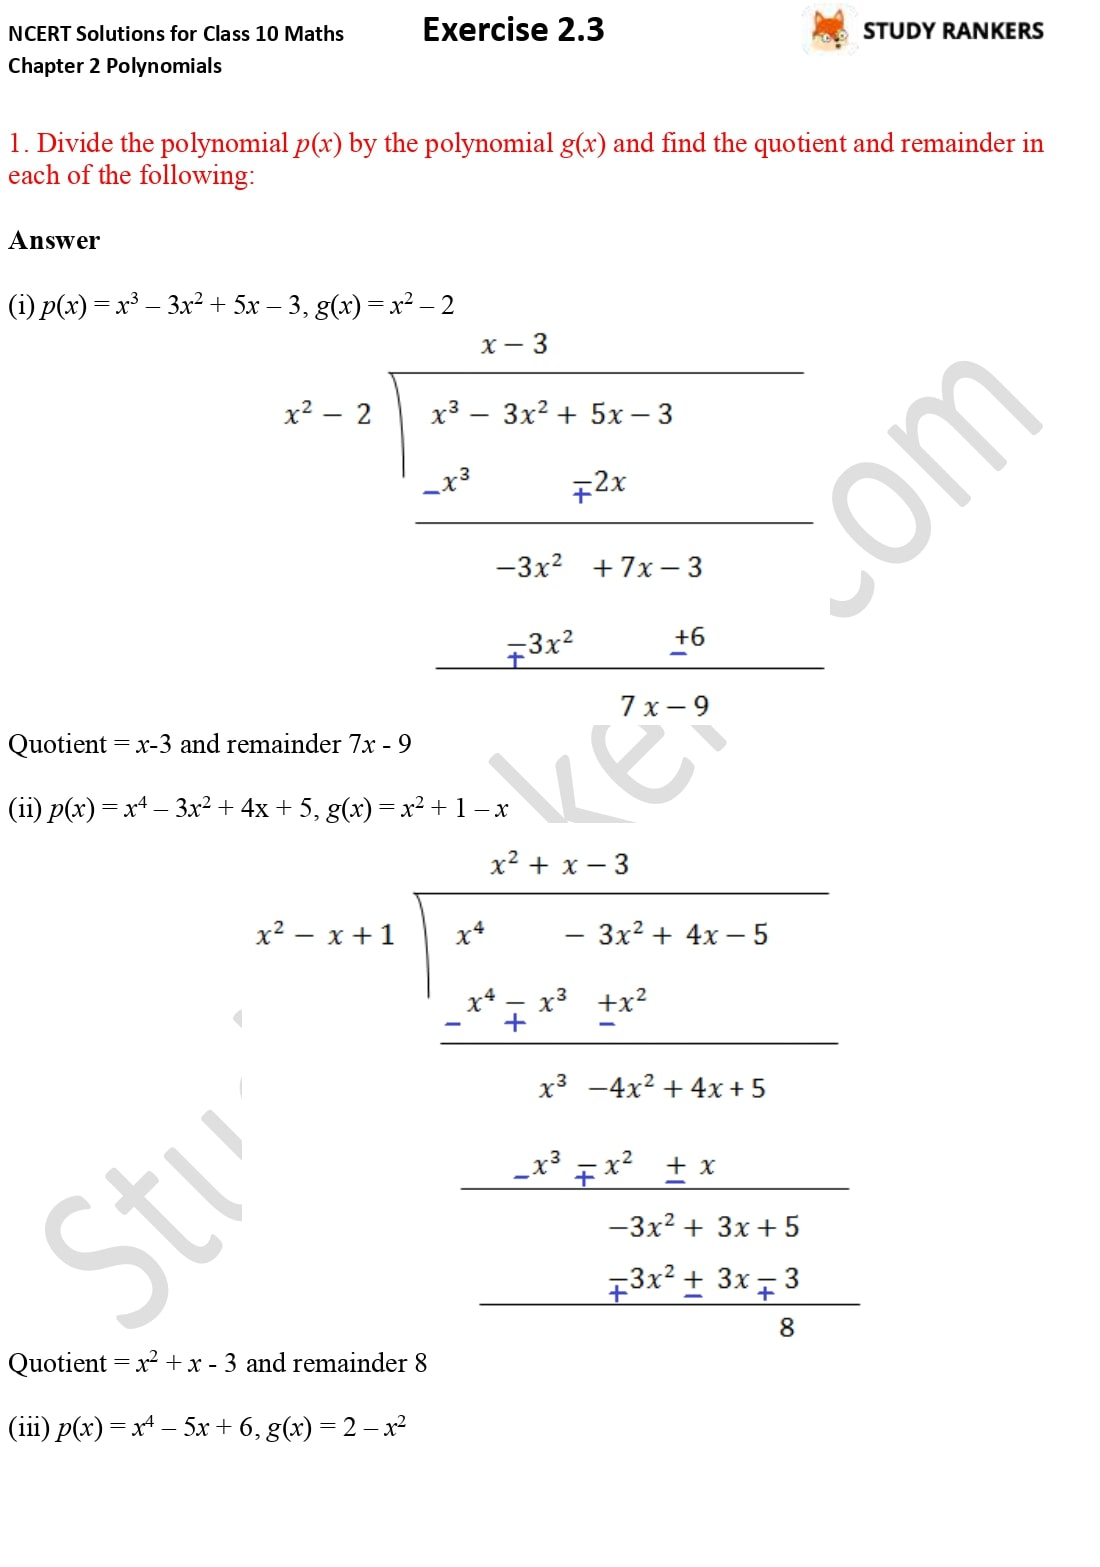 NCERT Solutions for Class 10 Maths Chapter 2 Polynomials Exercise 2.3 1